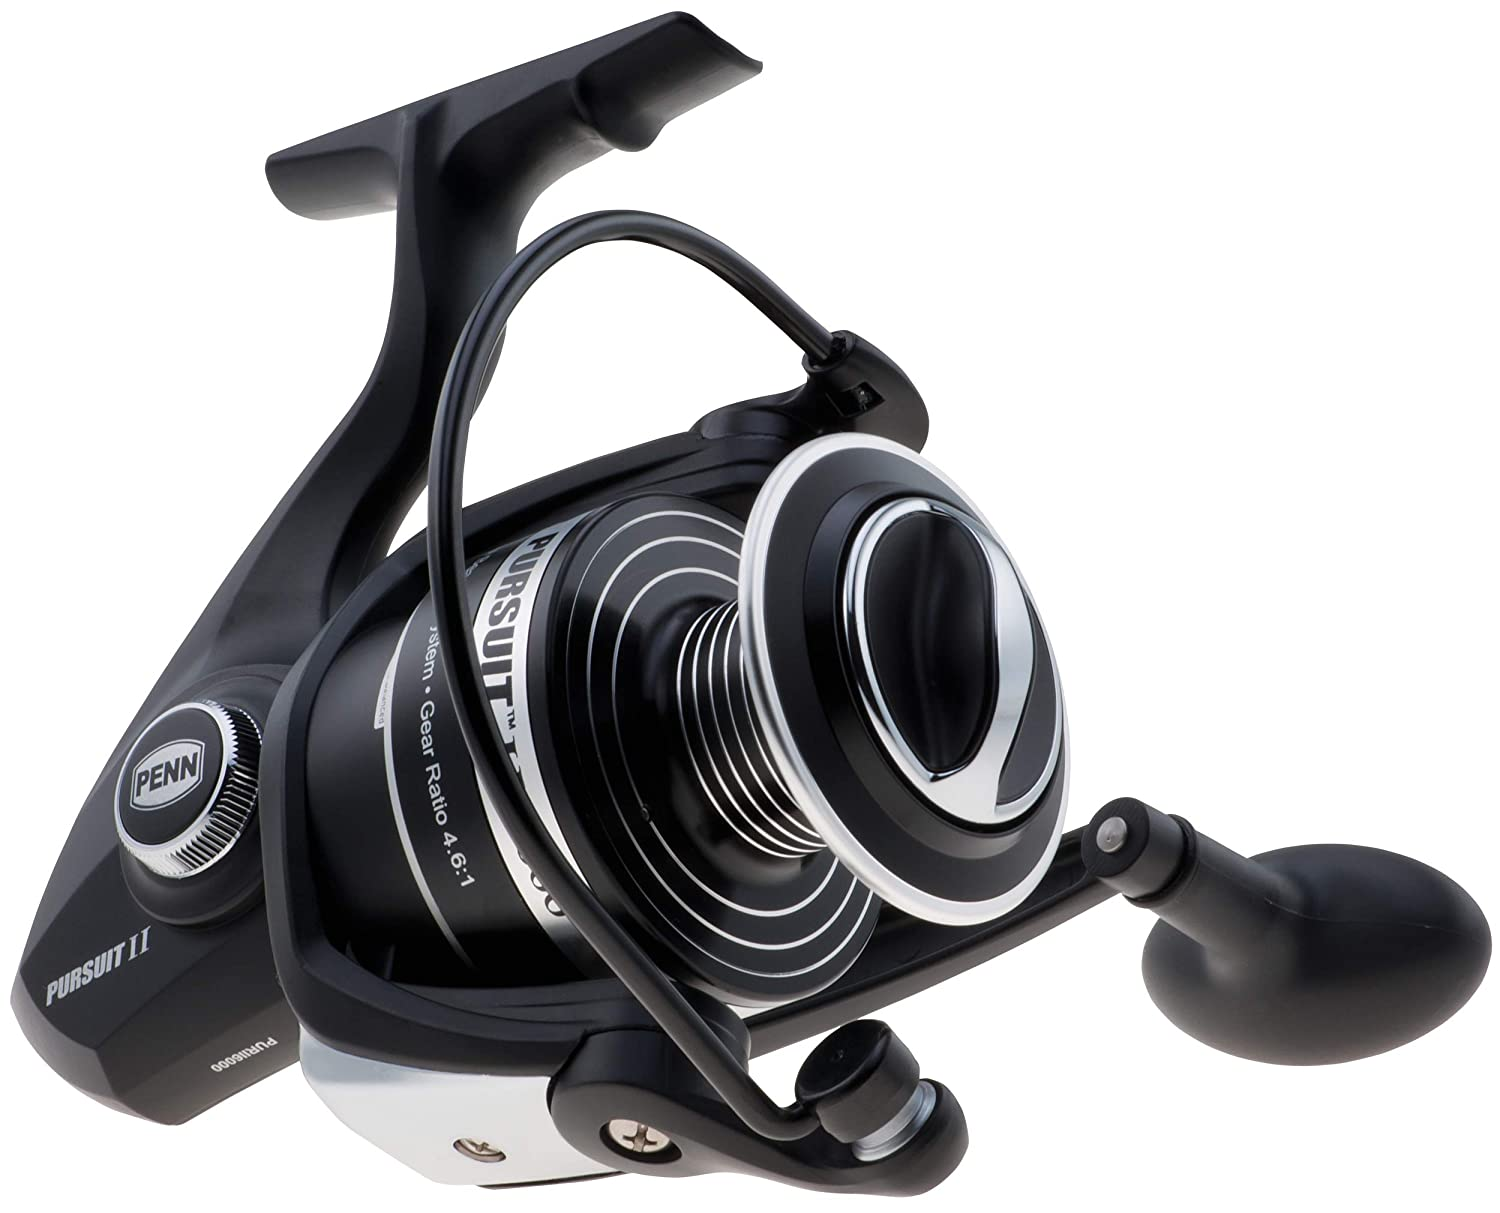 Best Spinning Reel Under 10 1